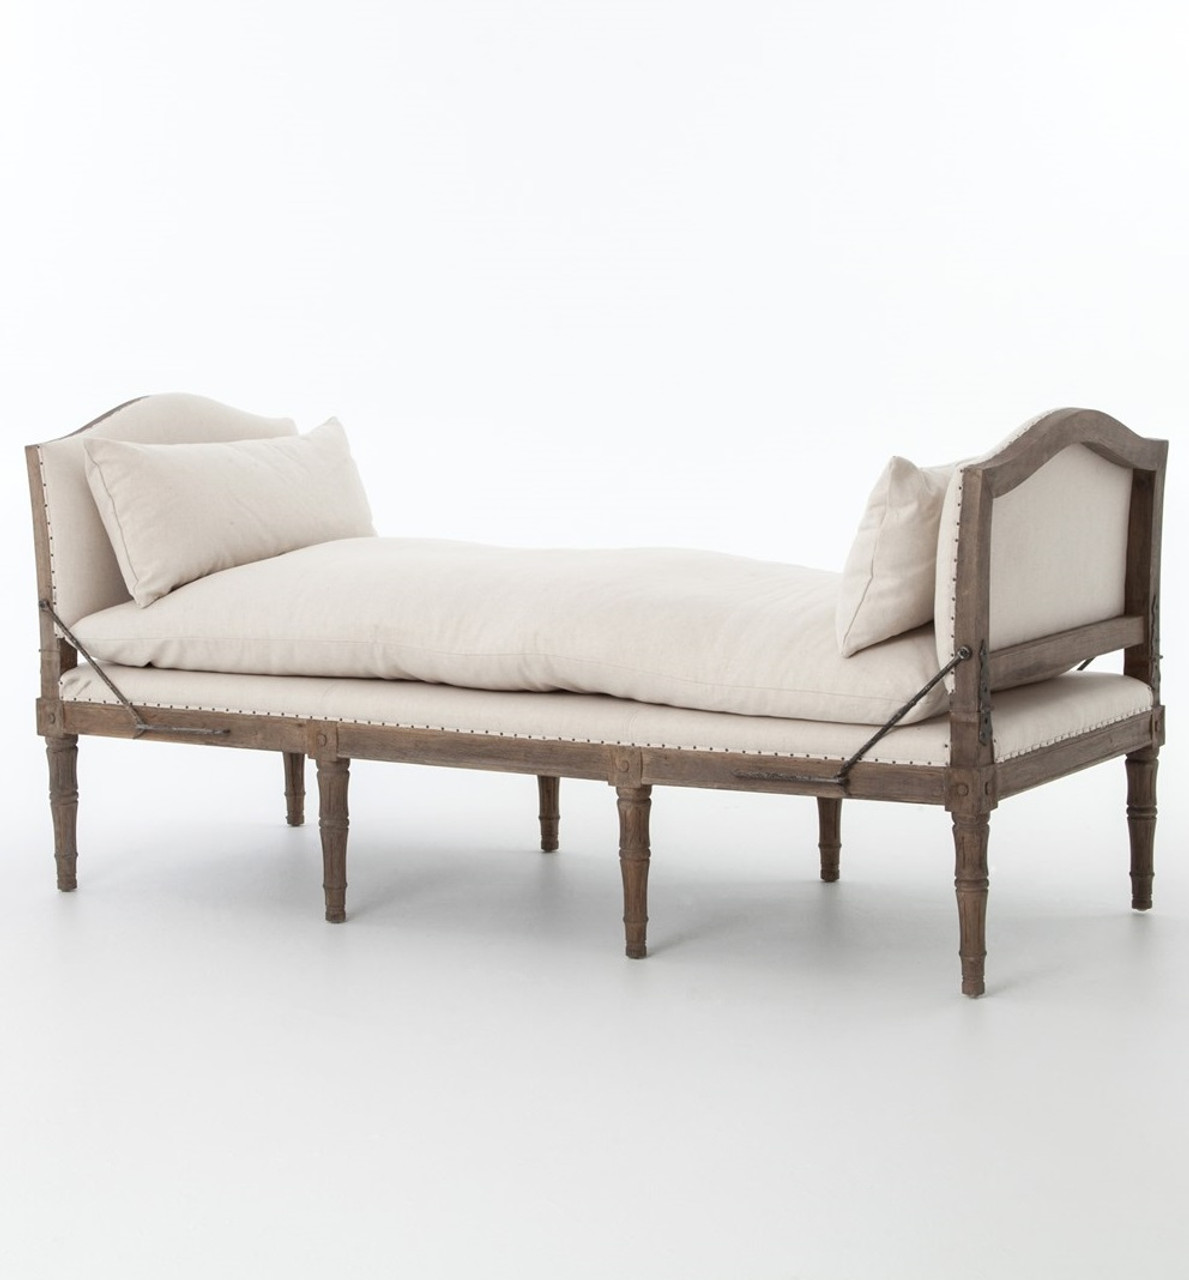 Bed End Sofa Best 25 End Bed Bench Ideas Pinterest